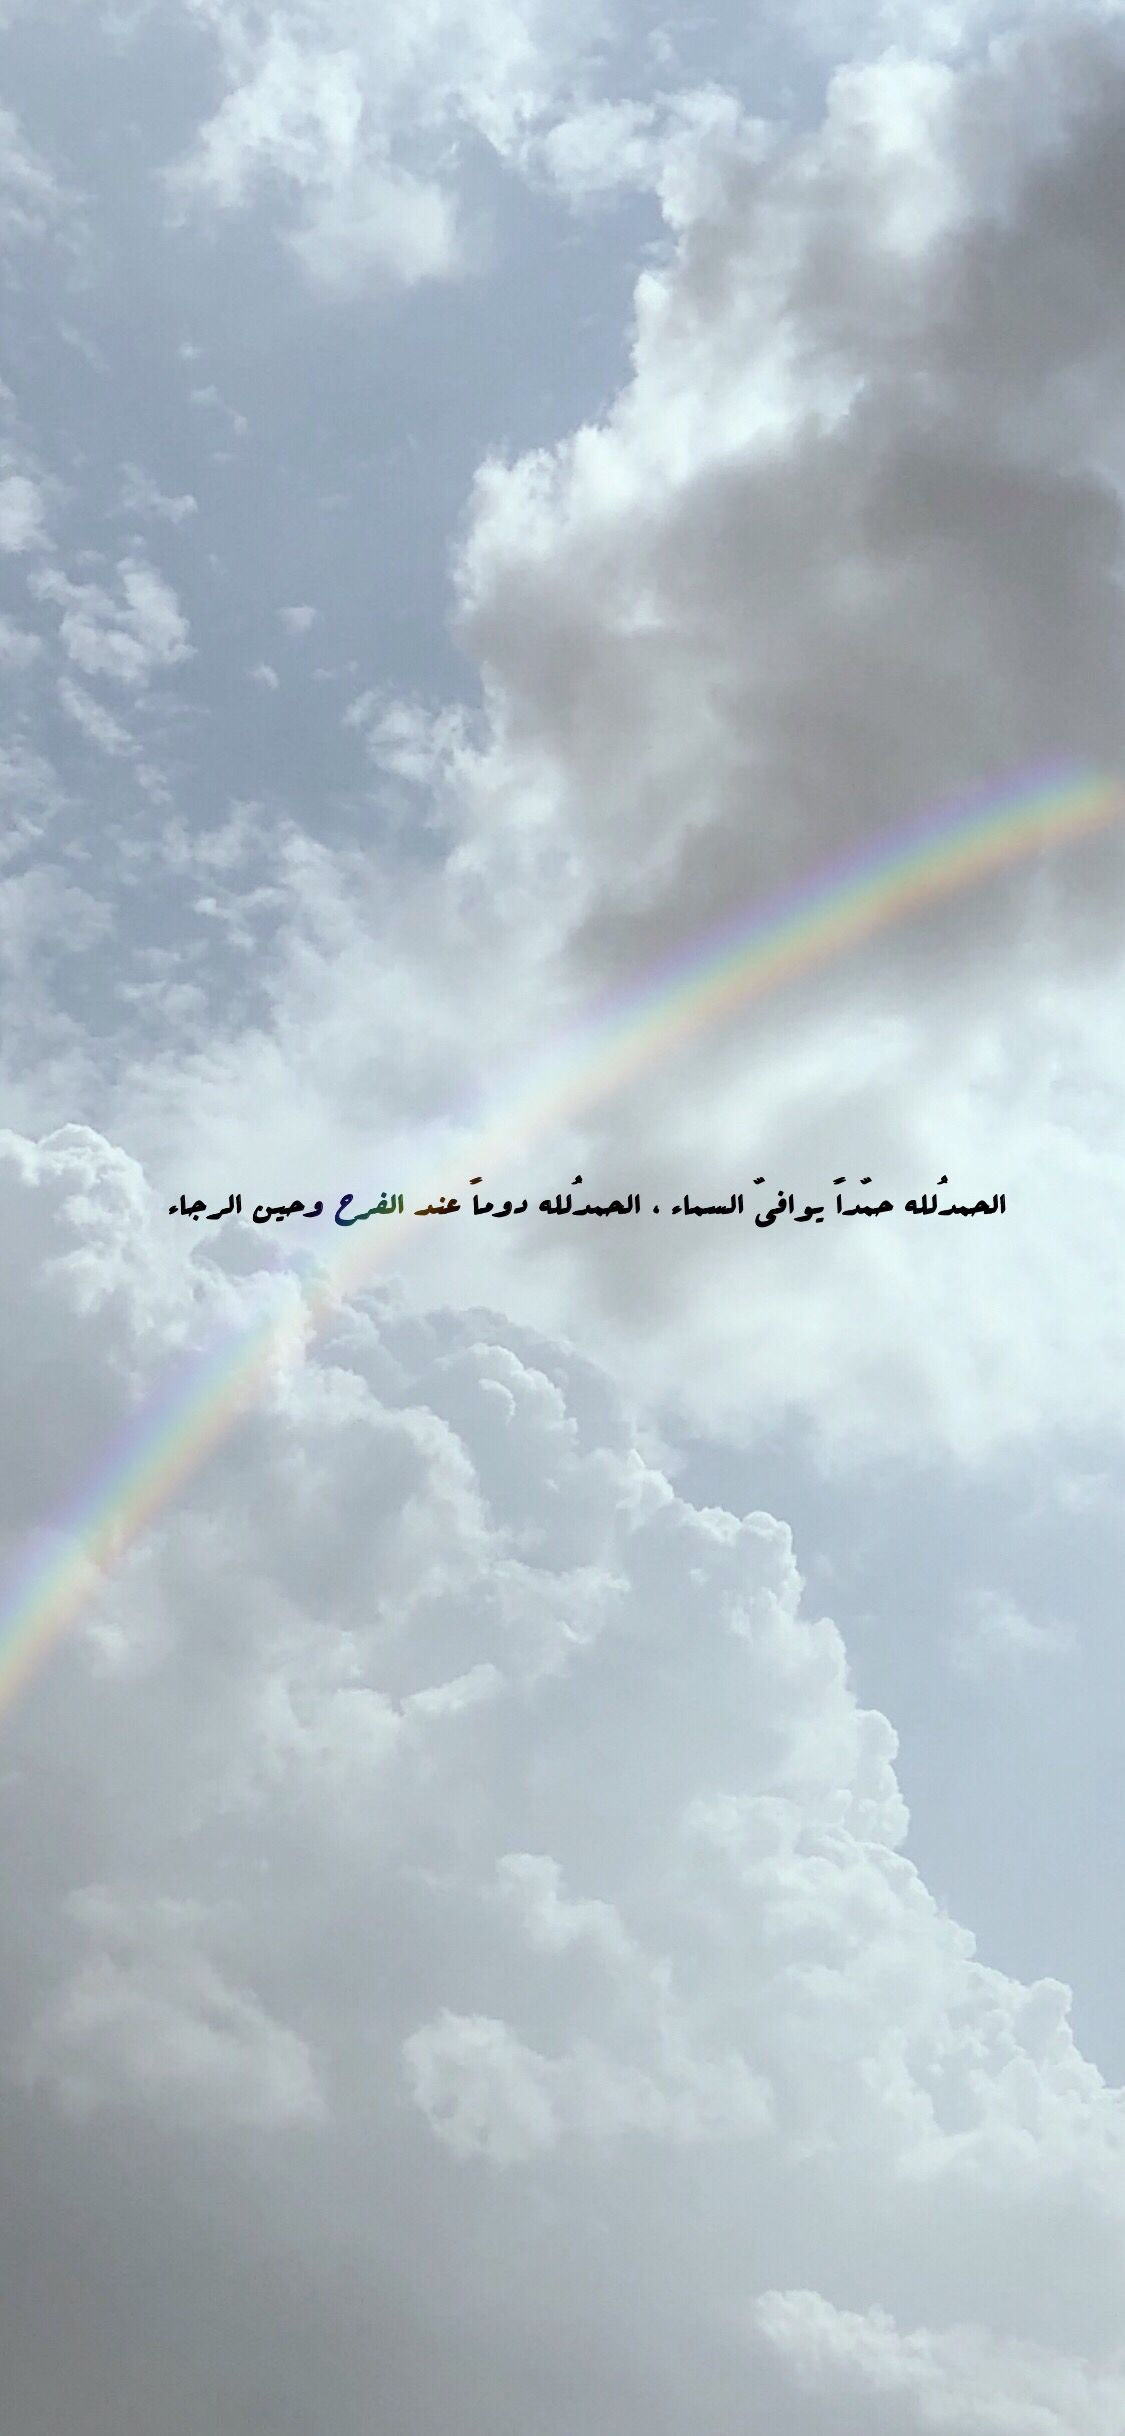 Photography Sky Positivity Design تصميم تصويري الفرح دعاء رمزيات Quotes About Photography Beautiful Arabic Words Quran Wallpaper